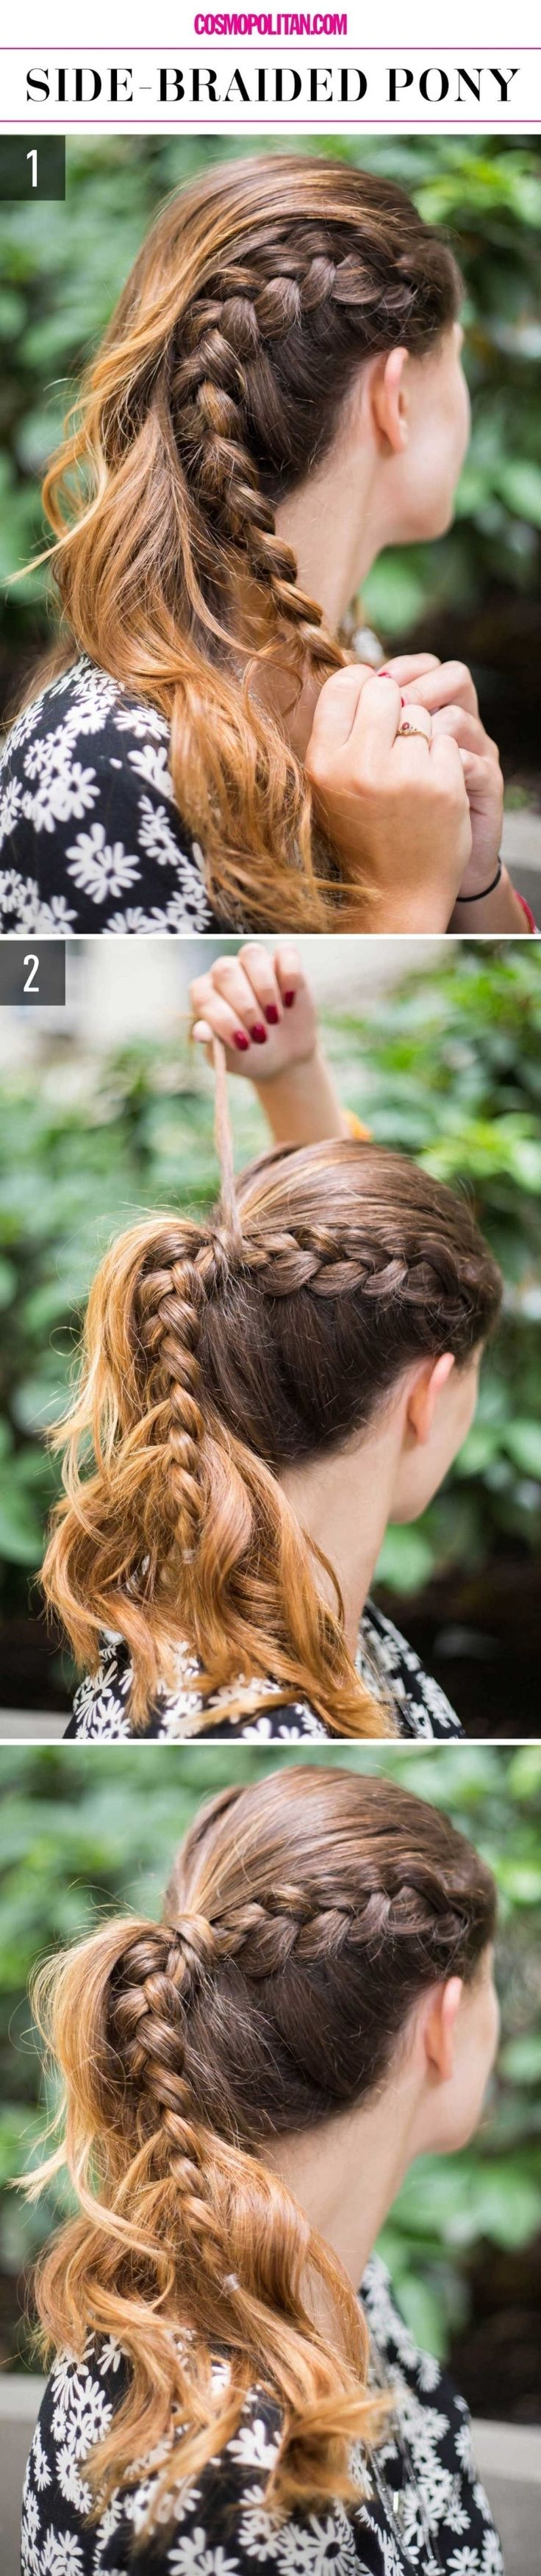 Outstanding 1000 Ideas About Super Cute Hairstyles On Pinterest Cute Hairstyles For Women Draintrainus